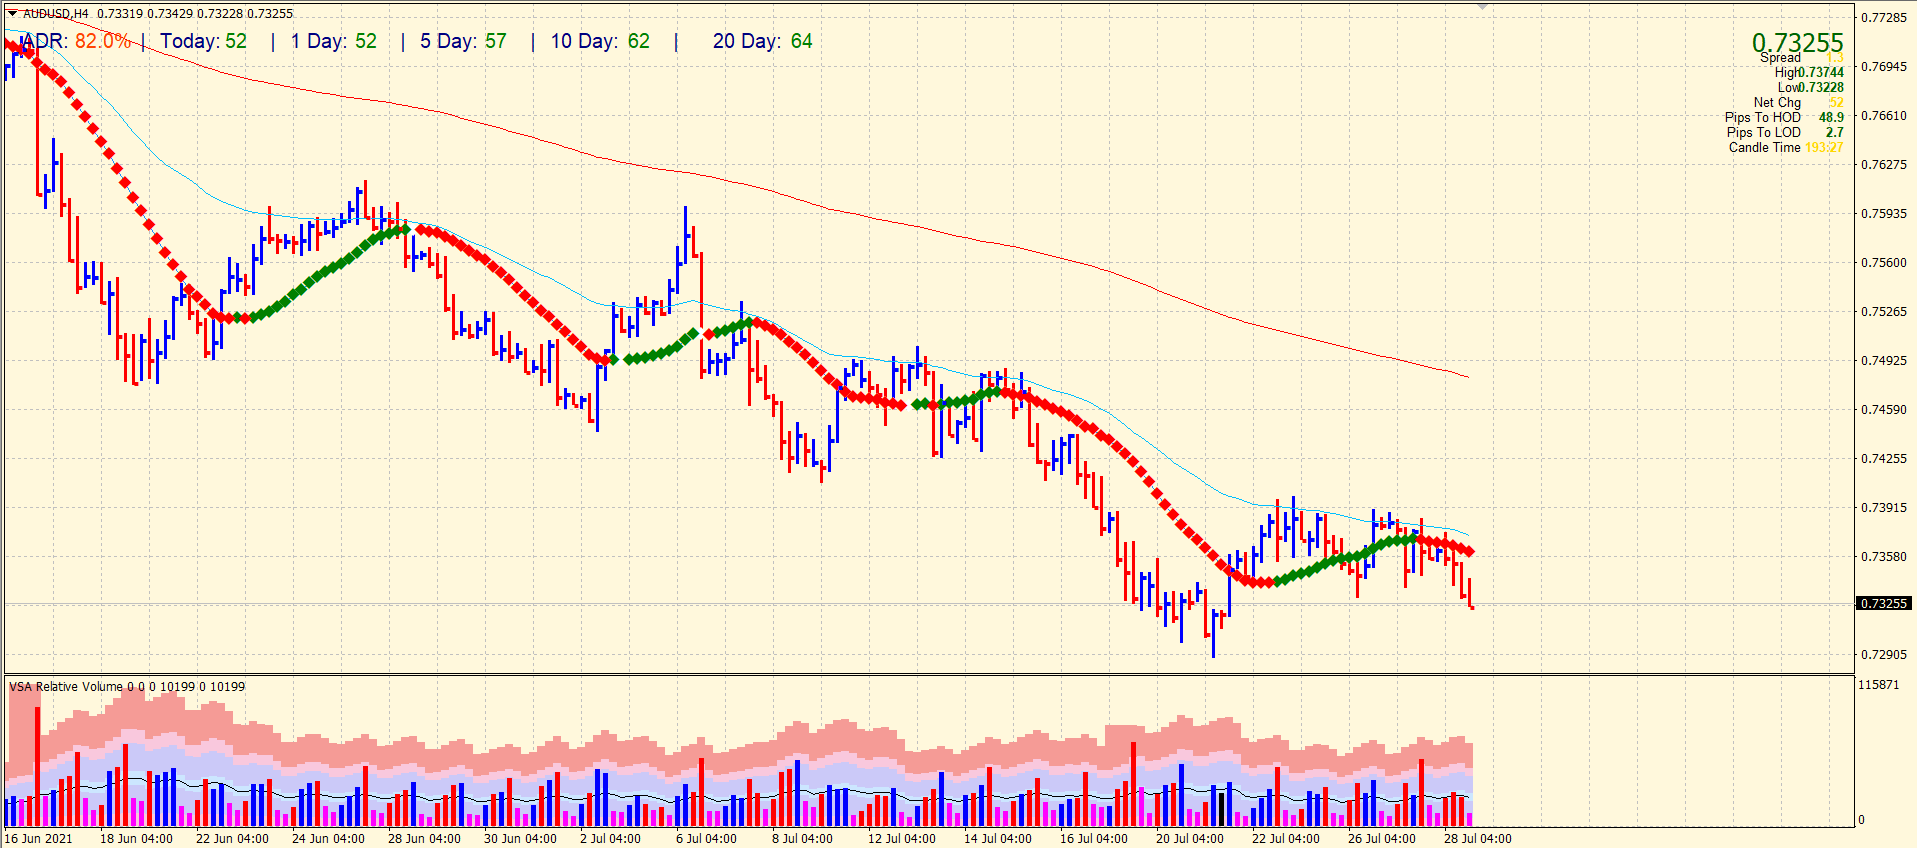 AUD/USD price on 4-hour chart